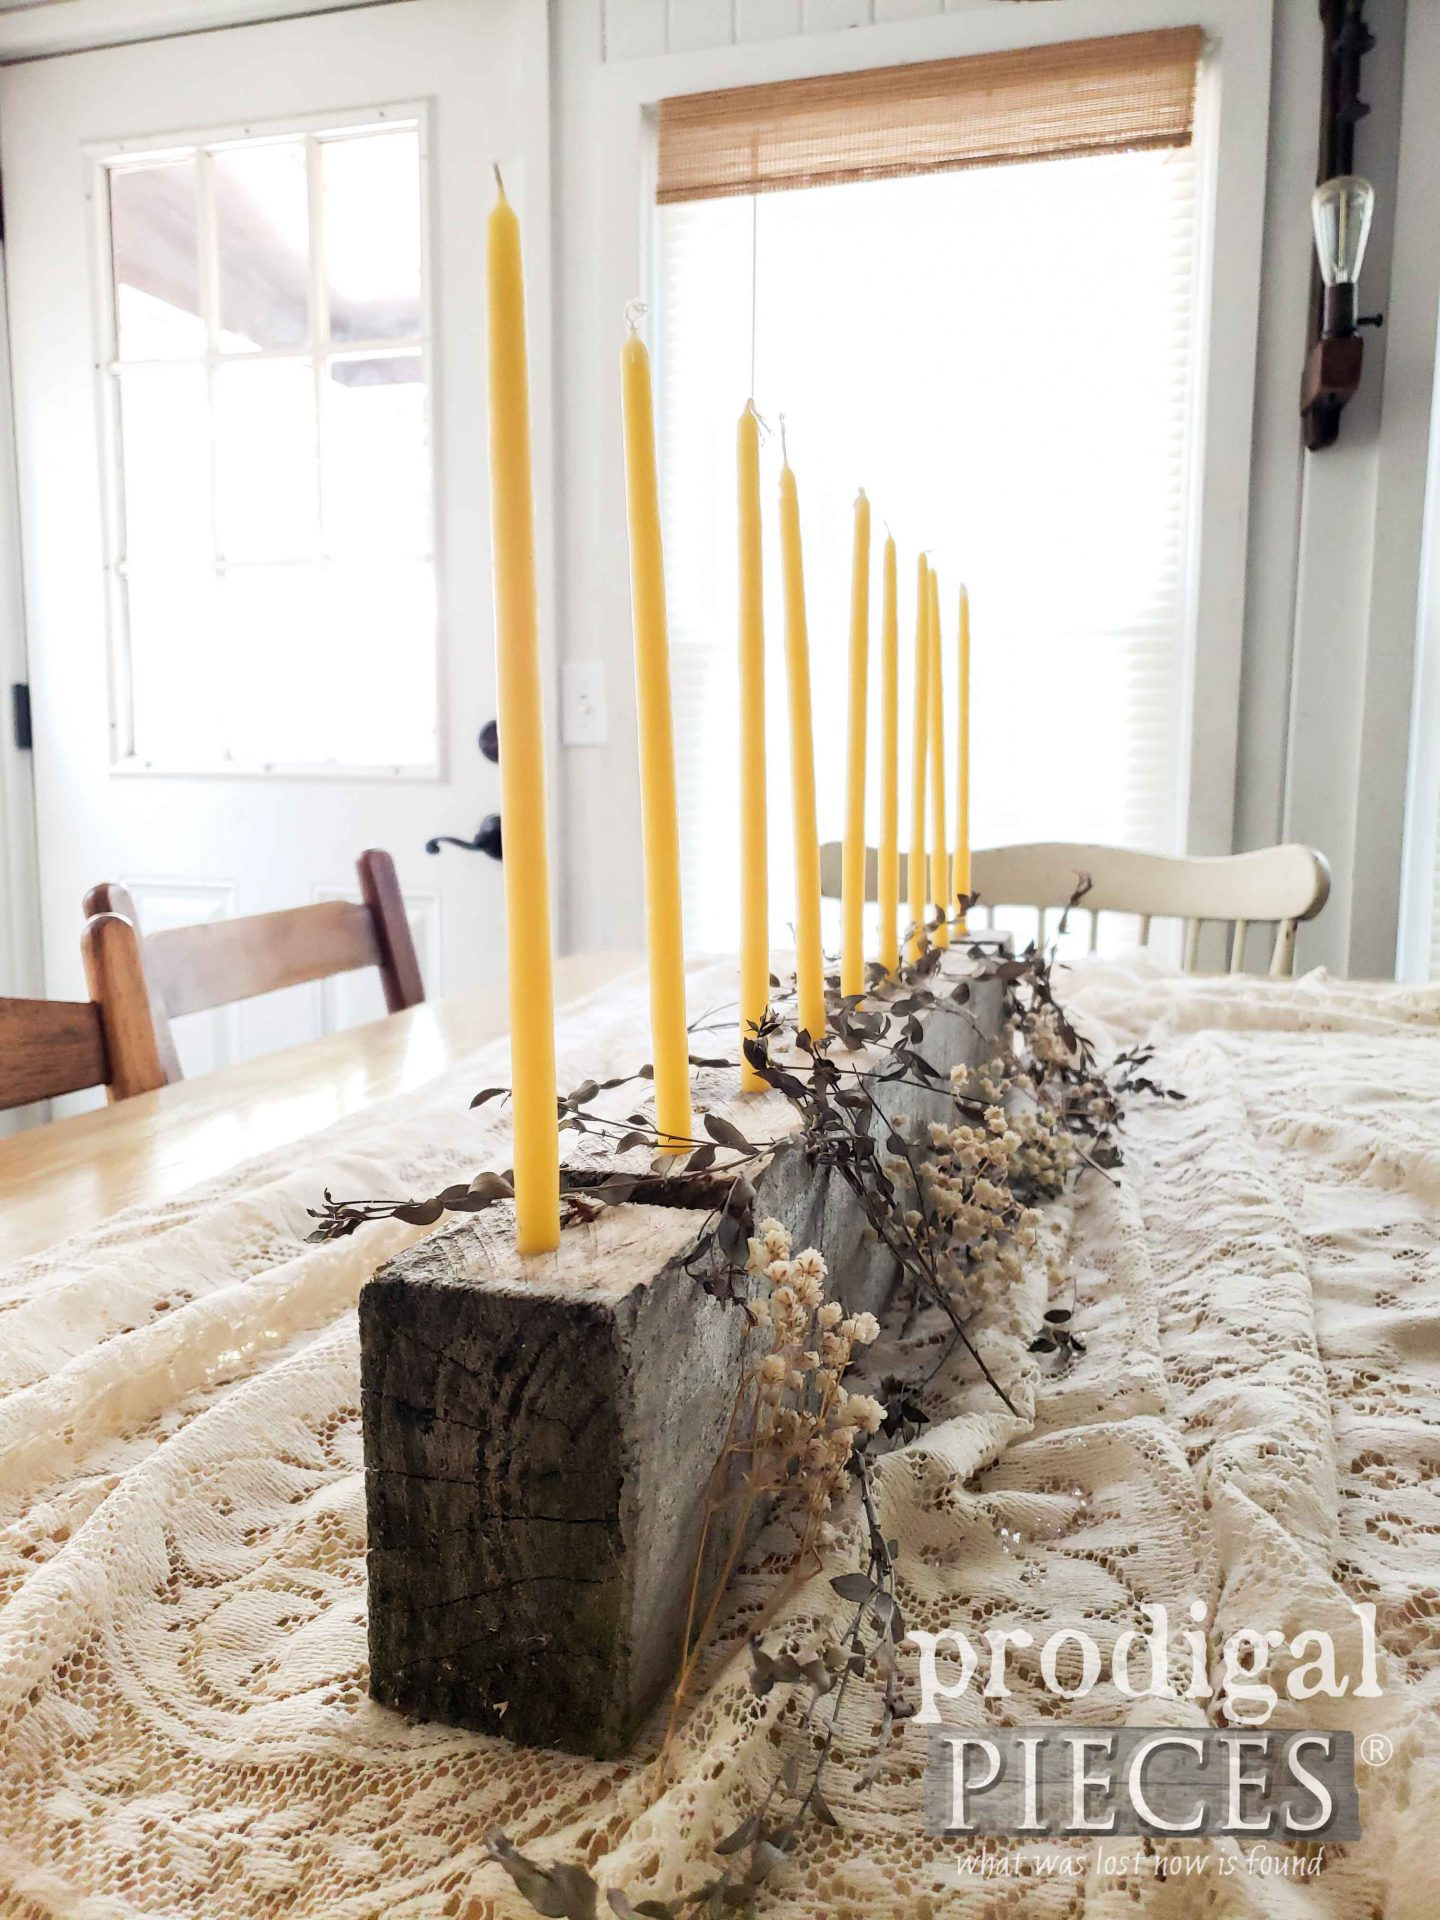 Hand-dipped Beeswax Candle Centerpiece for Farmhouse Decor by Larissa of Prodigal Pieces | prodigalpieces.com #prodigalpieces #home #homedecor #farmhouse #handmade